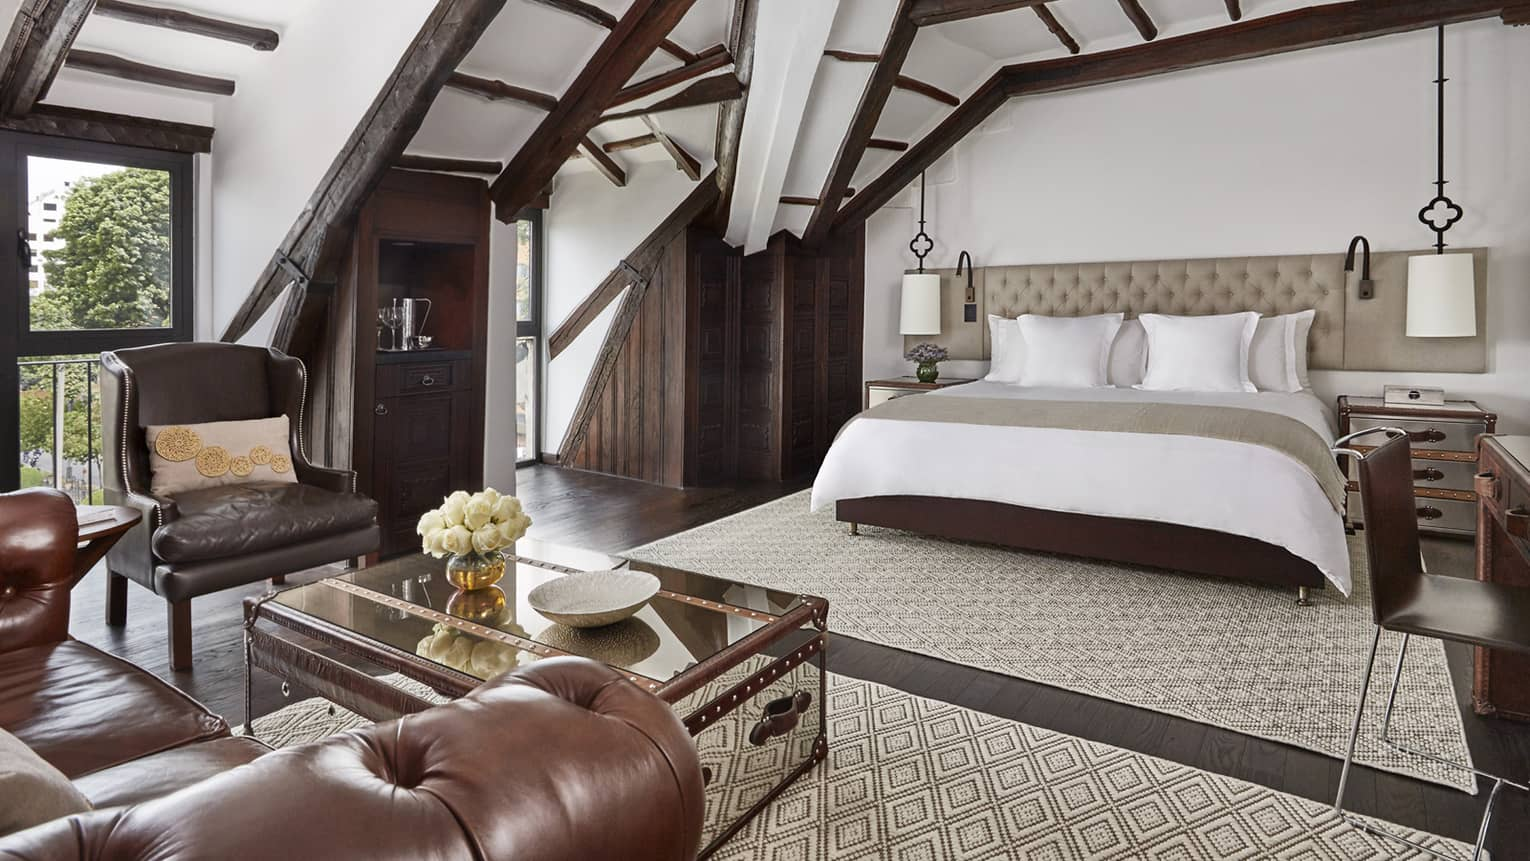 Sloped beam loft ceiling over hotel bed with padded headboard, brown leather armchair, table with flowers